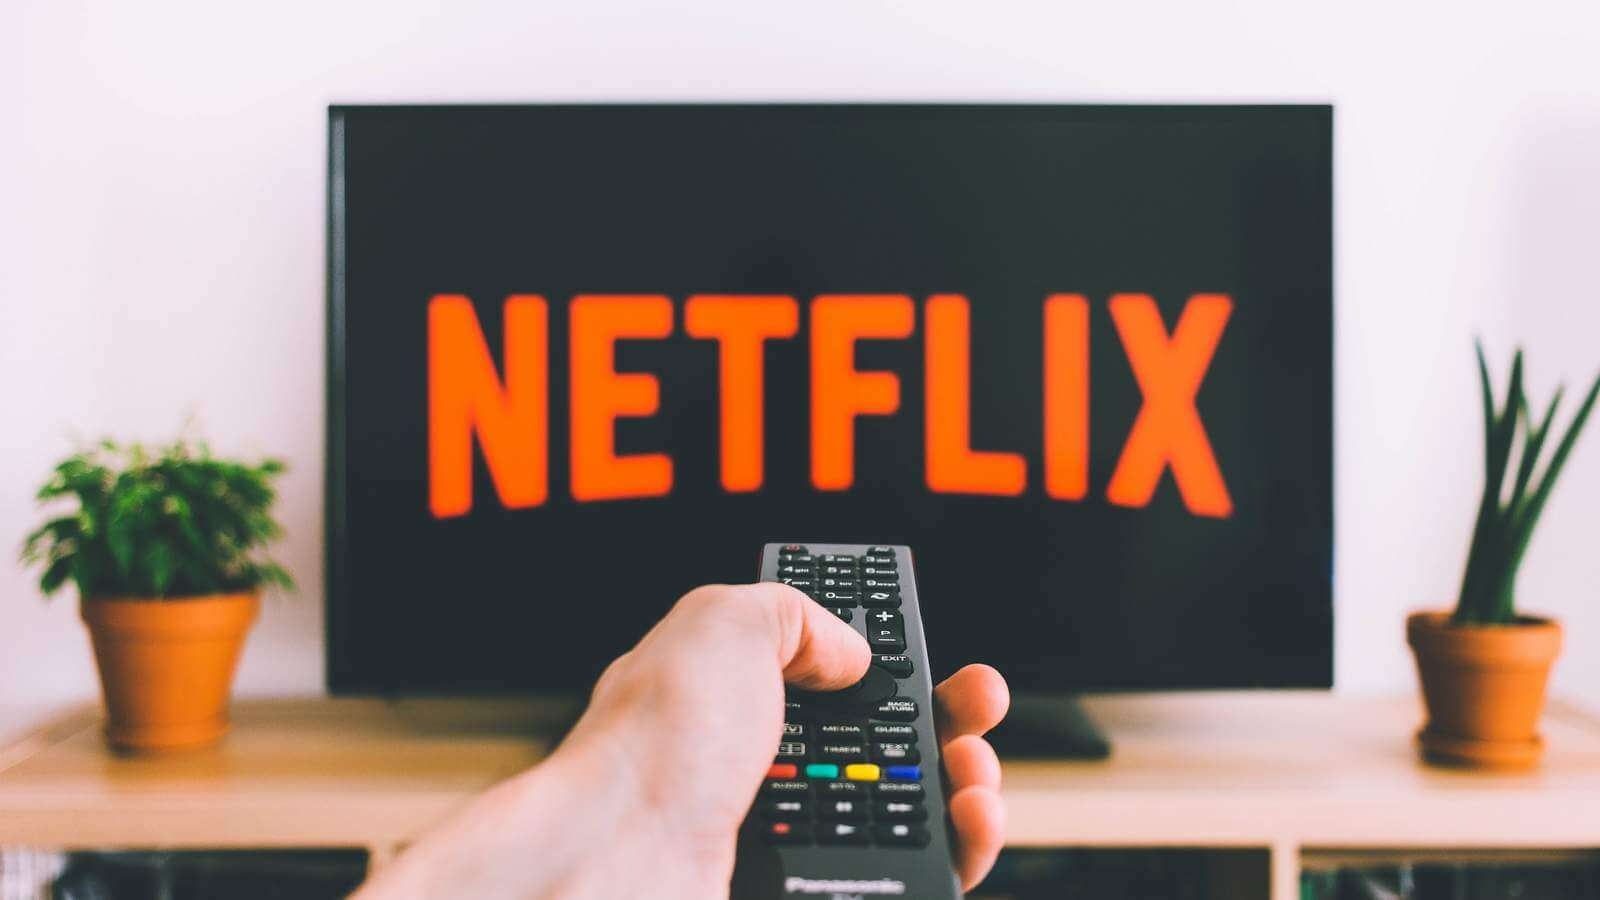 Netflix announces assurance of